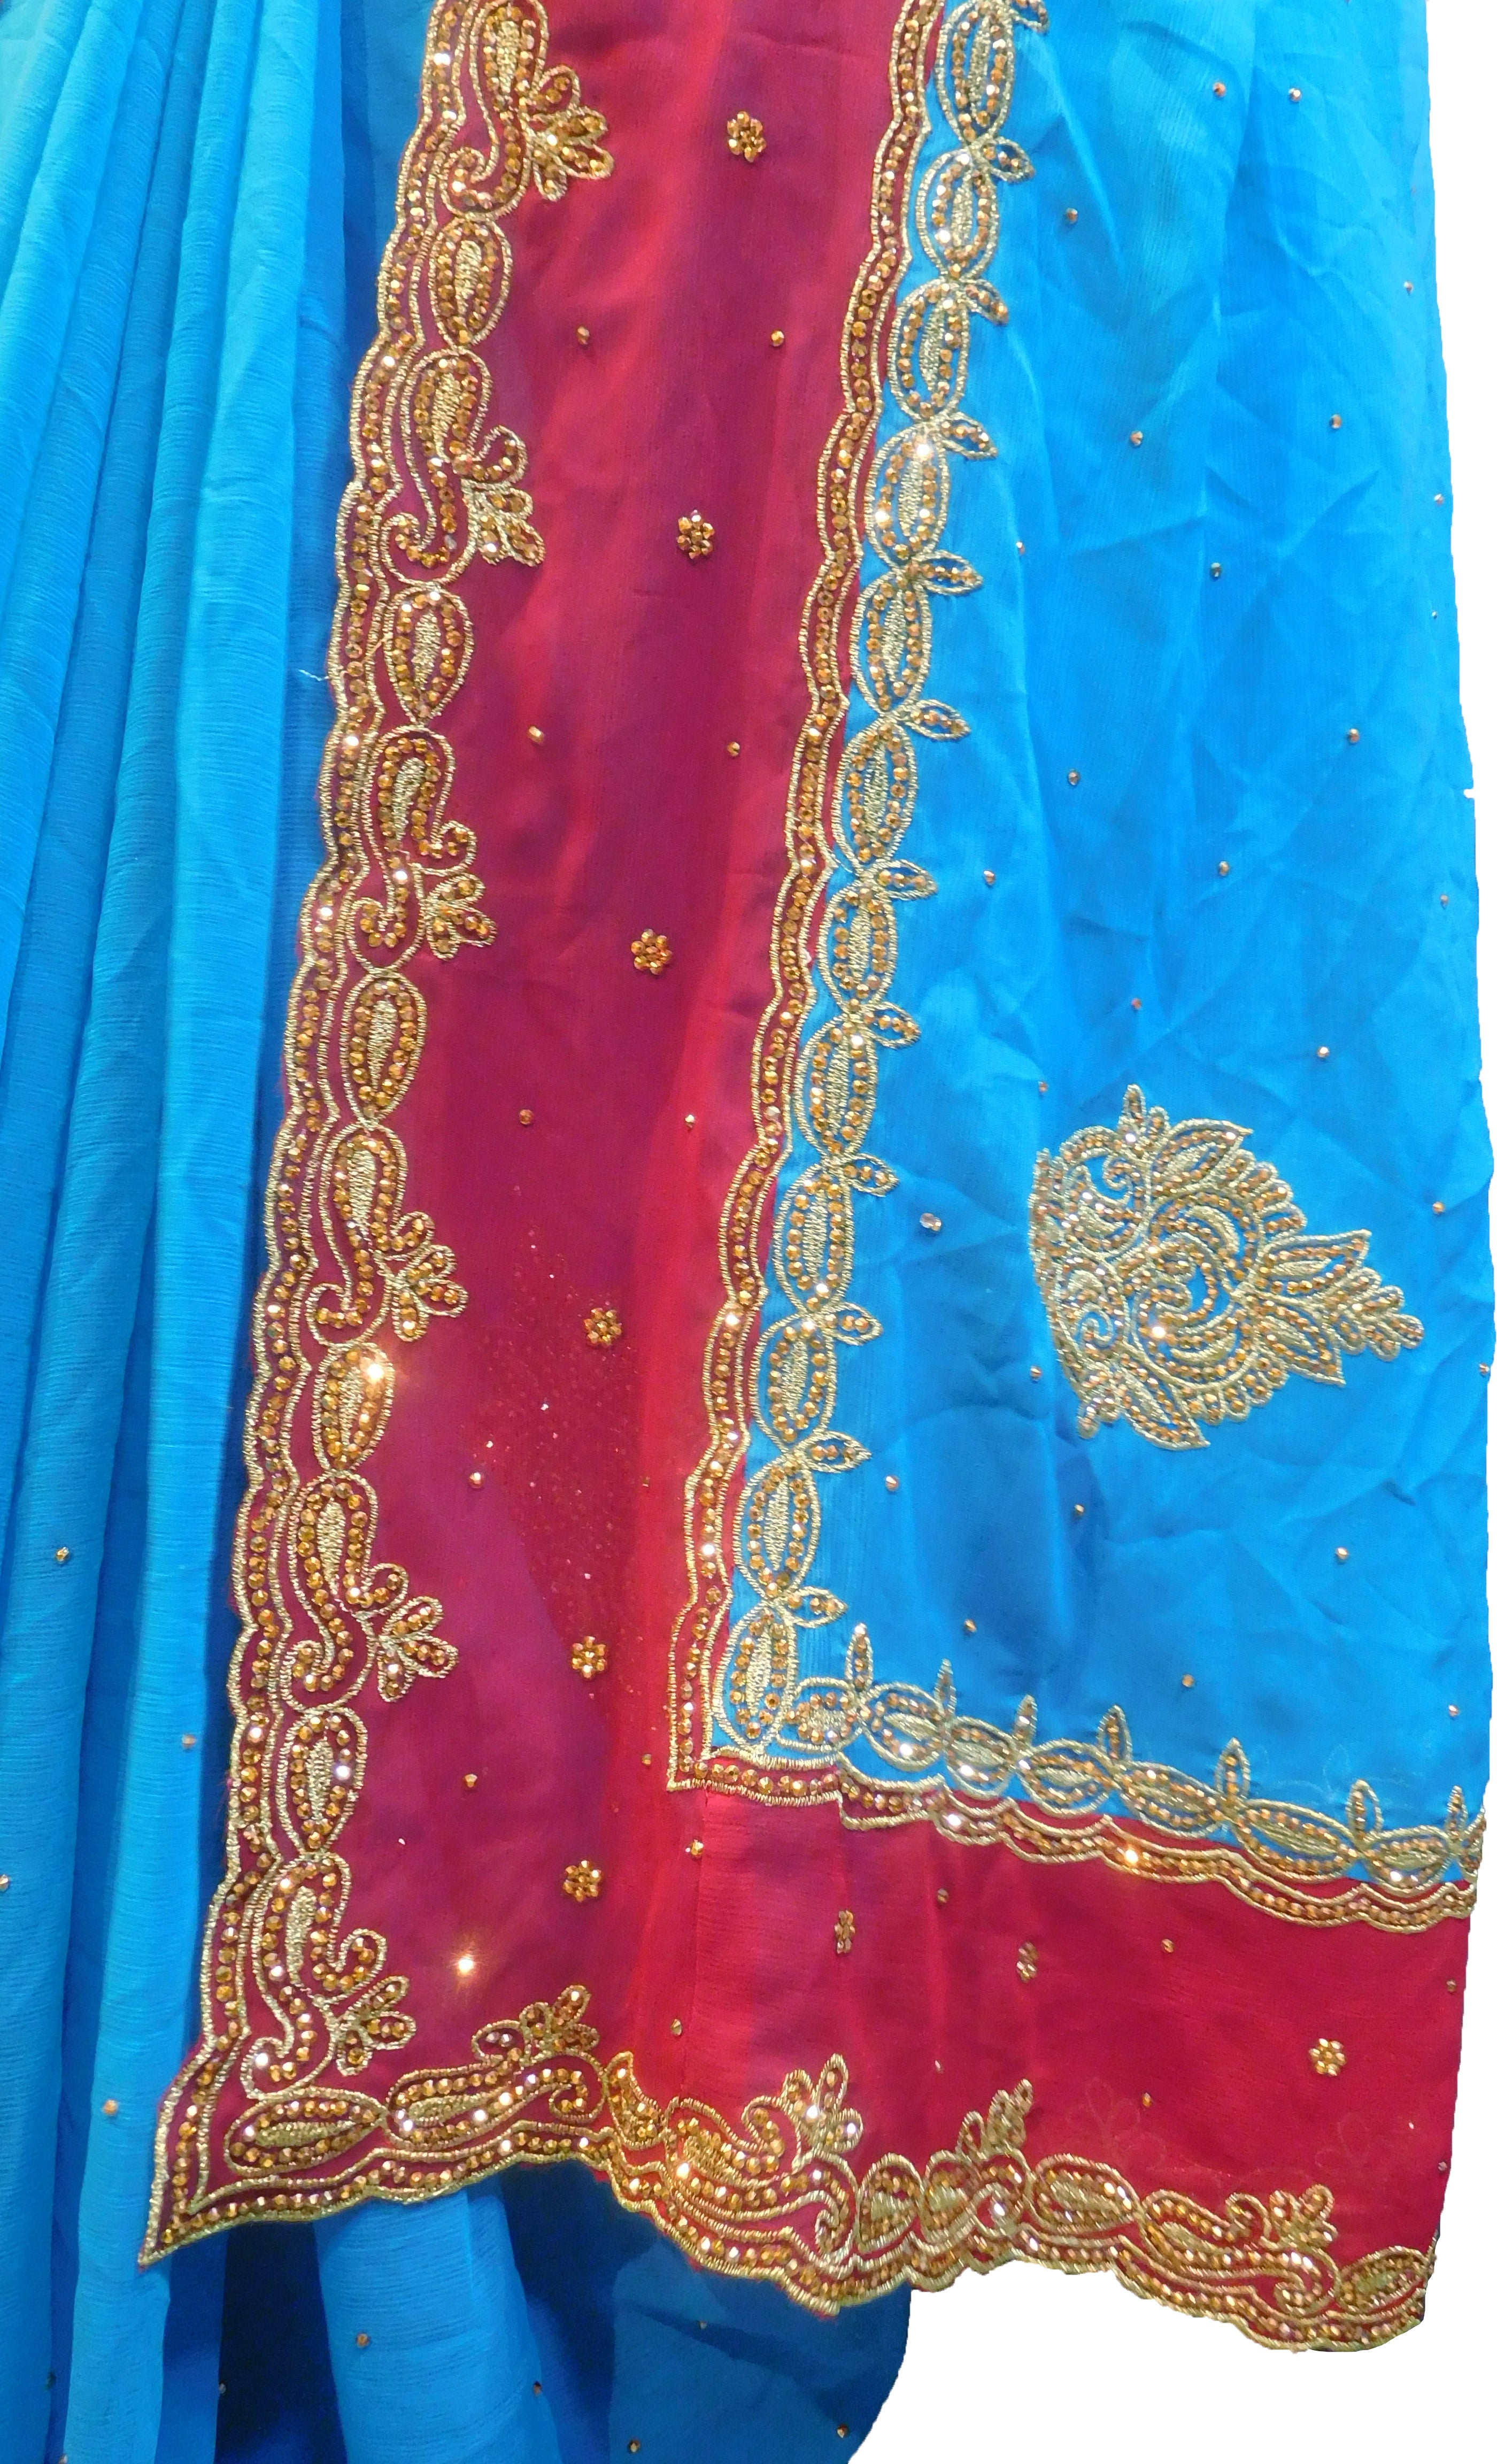 SMSAREE Blue & Red Designer Wedding Partywear Crepe (Chinon) Stone & Zari Hand Embroidery Work Bridal Saree Sari With Blouse Piece F315